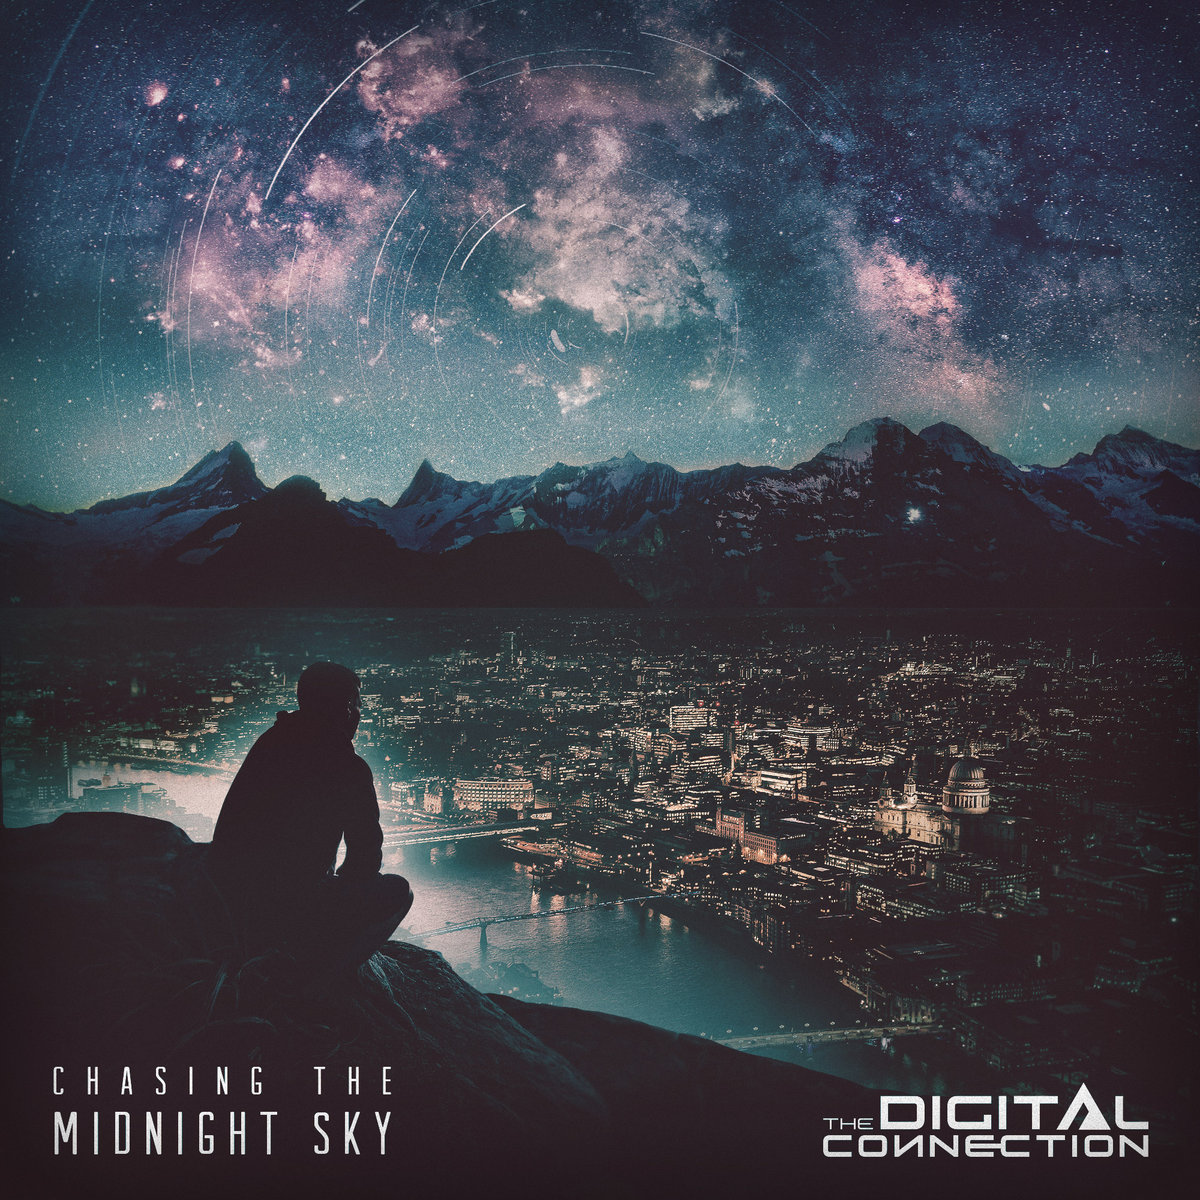 The Digital Connection - Until We Wake @ 'Chasing The Midnight Sky' album (colorado, idm)